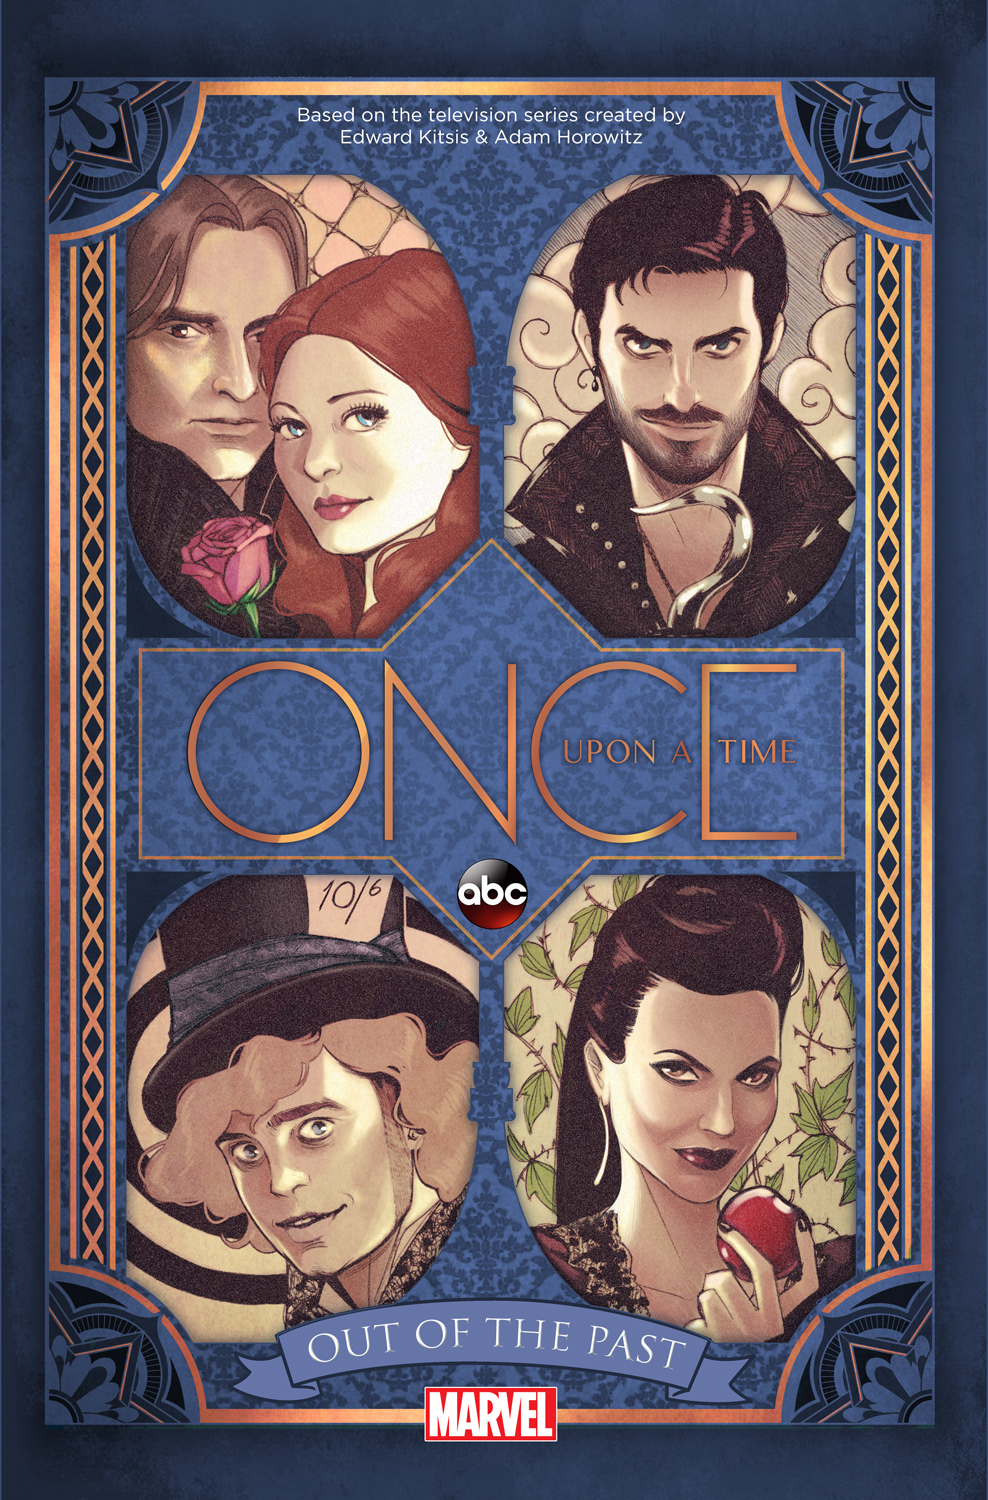 New Quot Once Upon A Time Quot Graphic Novel Announced